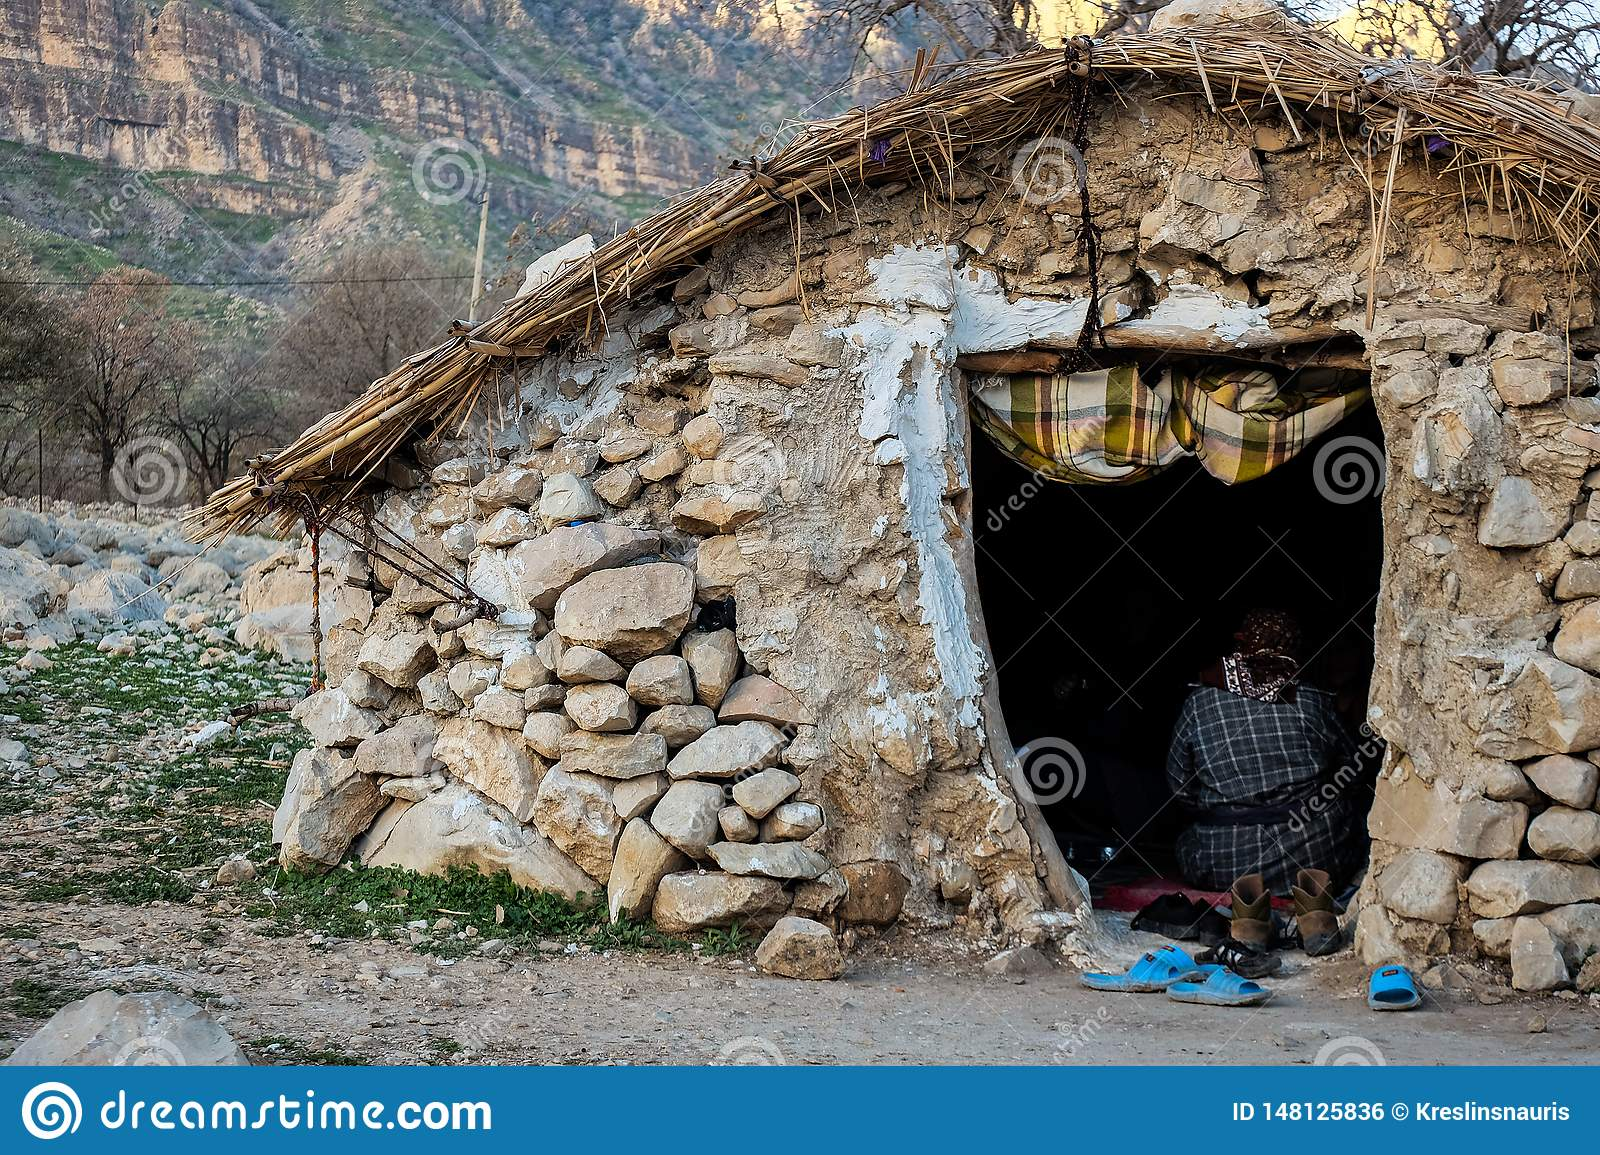 Nomads rural rock house in Zagros mountains in Iran